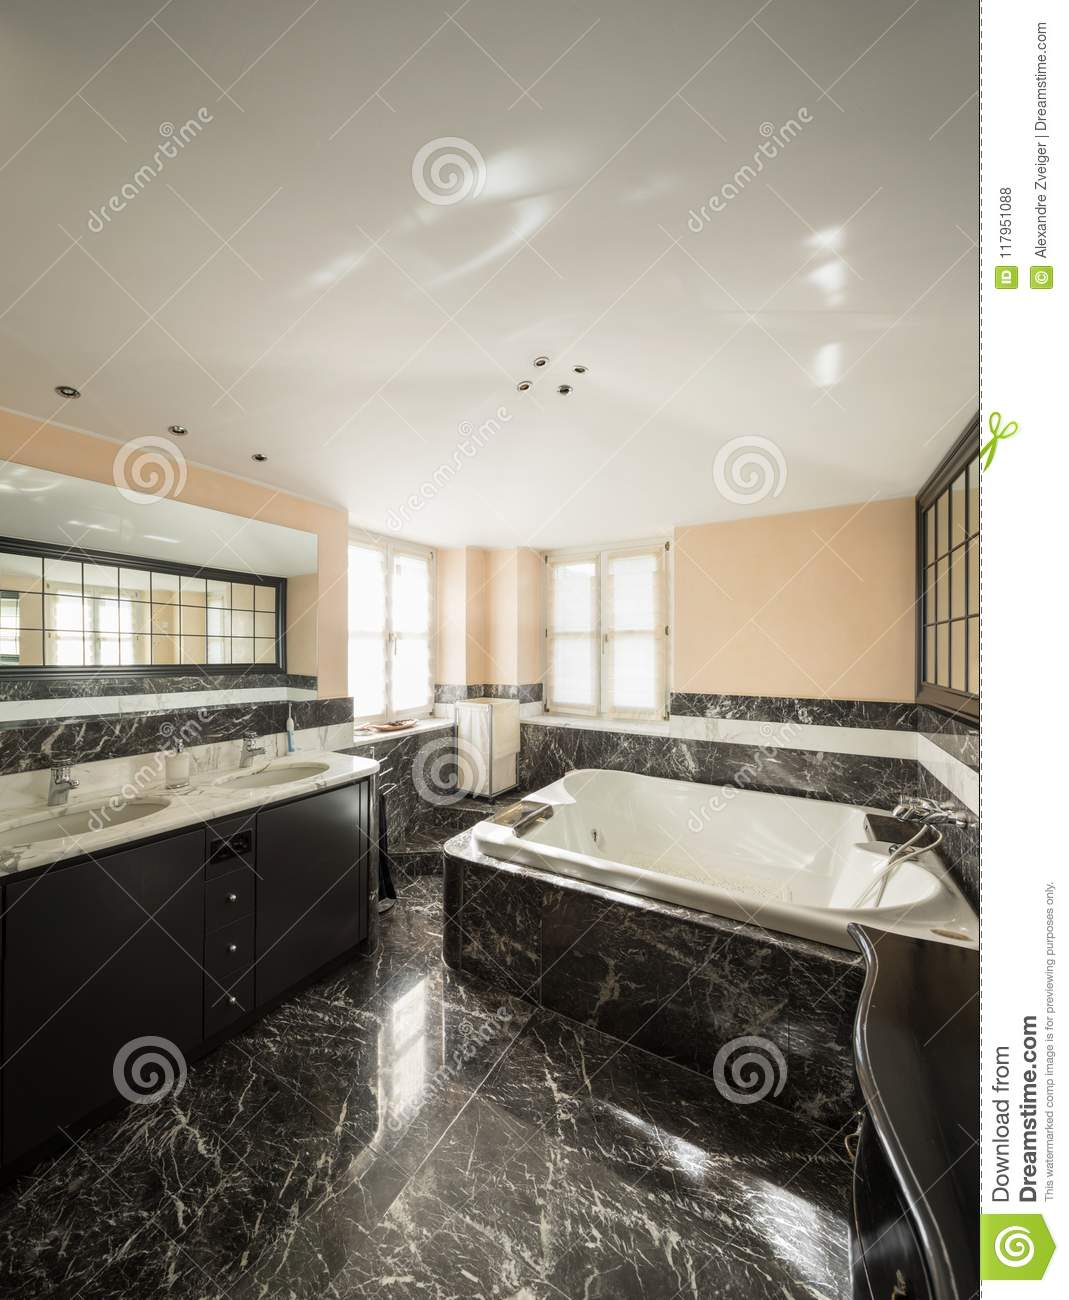 Bathroom With Black Marble Tiles And Empty Big Bathtub Stock Photo Image Of Home Marble 117951088